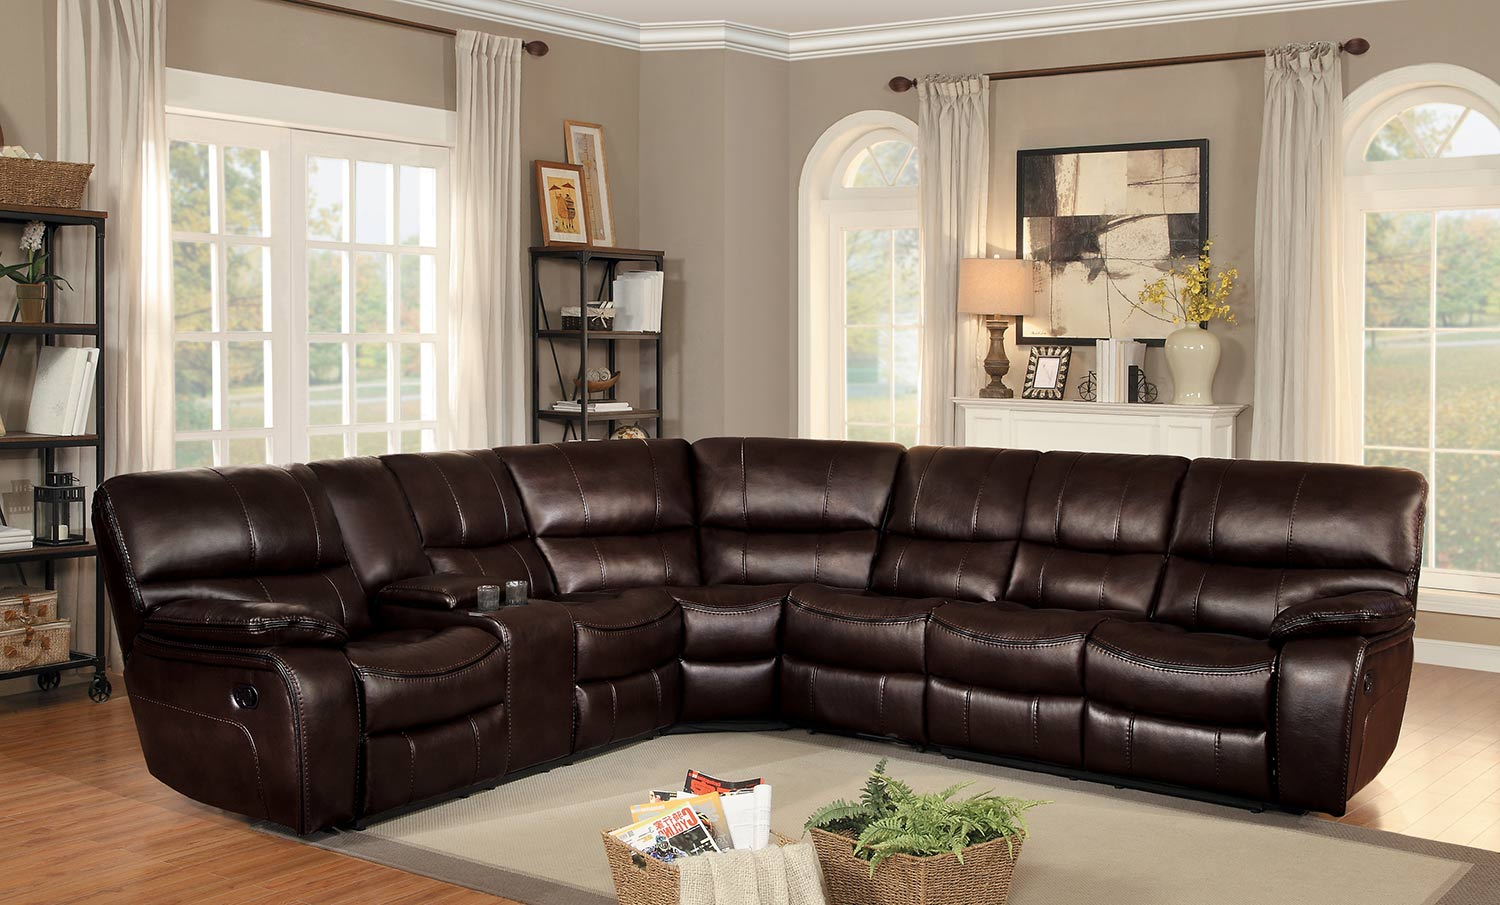 Homelegance Pecos Reclining Sectional Set - Dark Brown Leather Gel Match : brown reclining sectional - Sectionals, Sofas & Couches